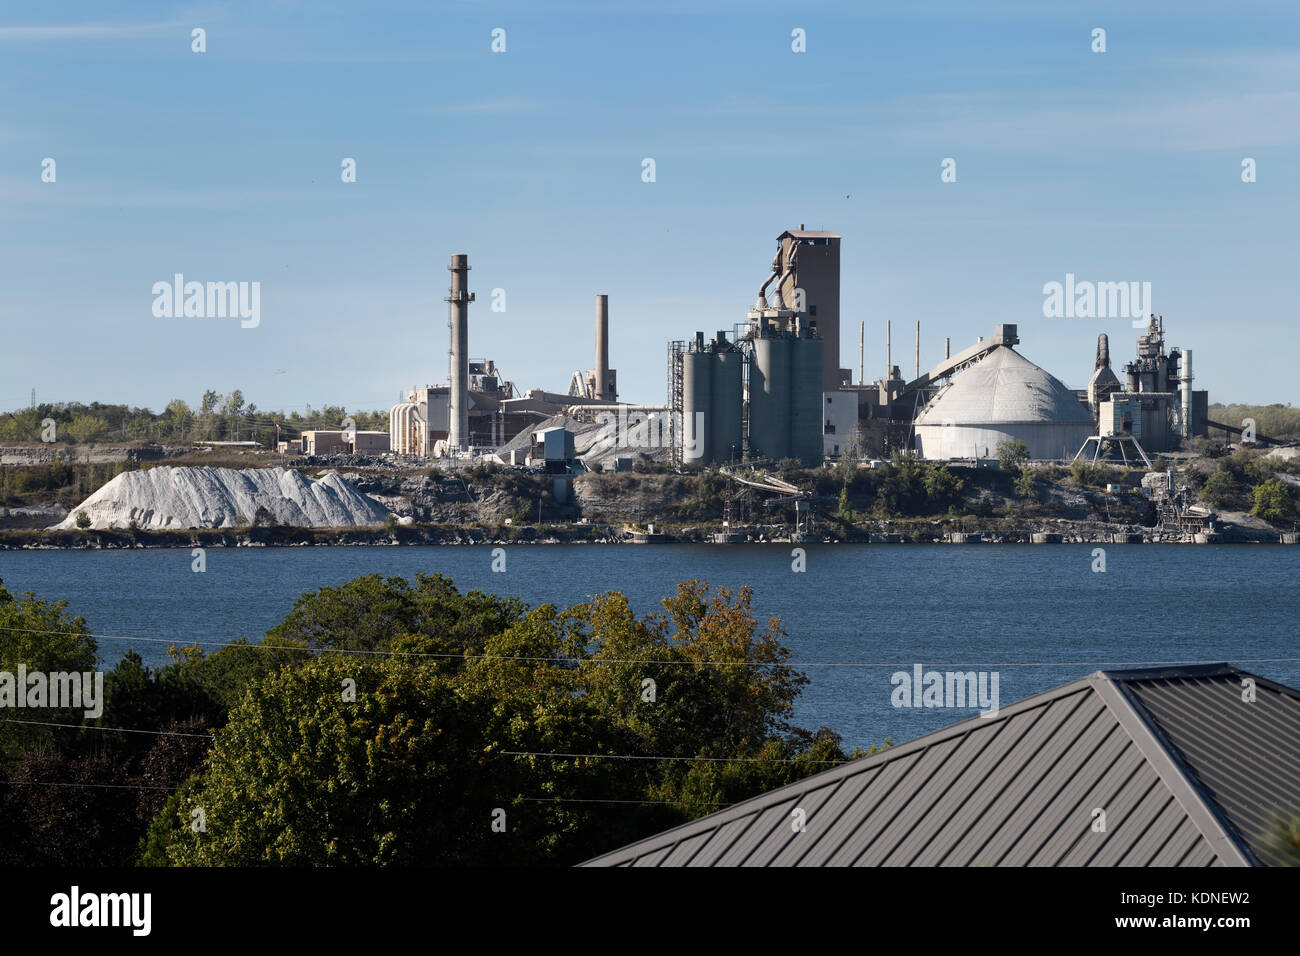 Lehigh Cement Company plant at Picton Bay in Prince Edward County Ontario - Stock Image